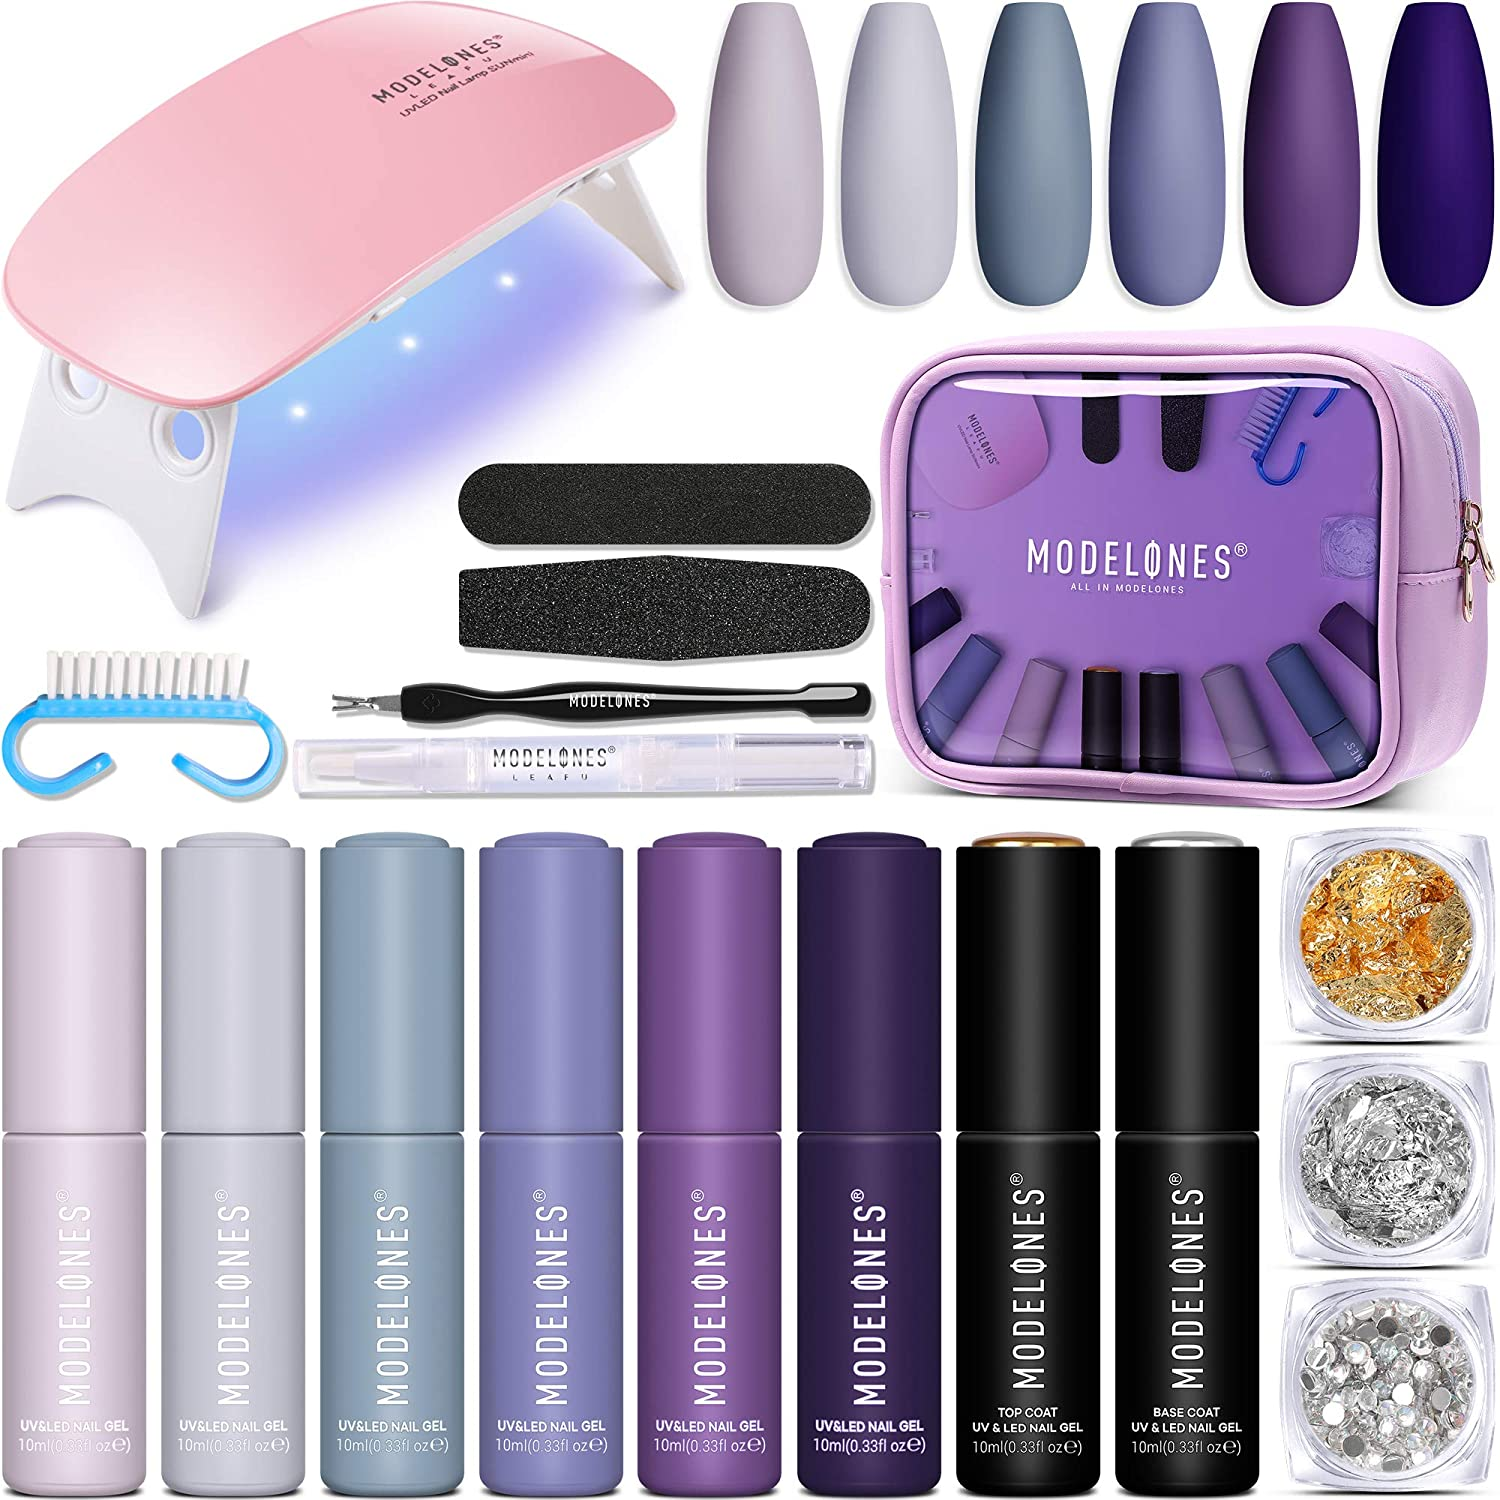 Gel Nails Kit with Light - 6 Colors Gel Nail Polish Kit 10ml, Soak Off Gel Nail Polish Set with U V Light, 10ml Base and Top Coat, Manicure Gel Nail Kit for Beginner, Shellac Nail Kit by Modelones